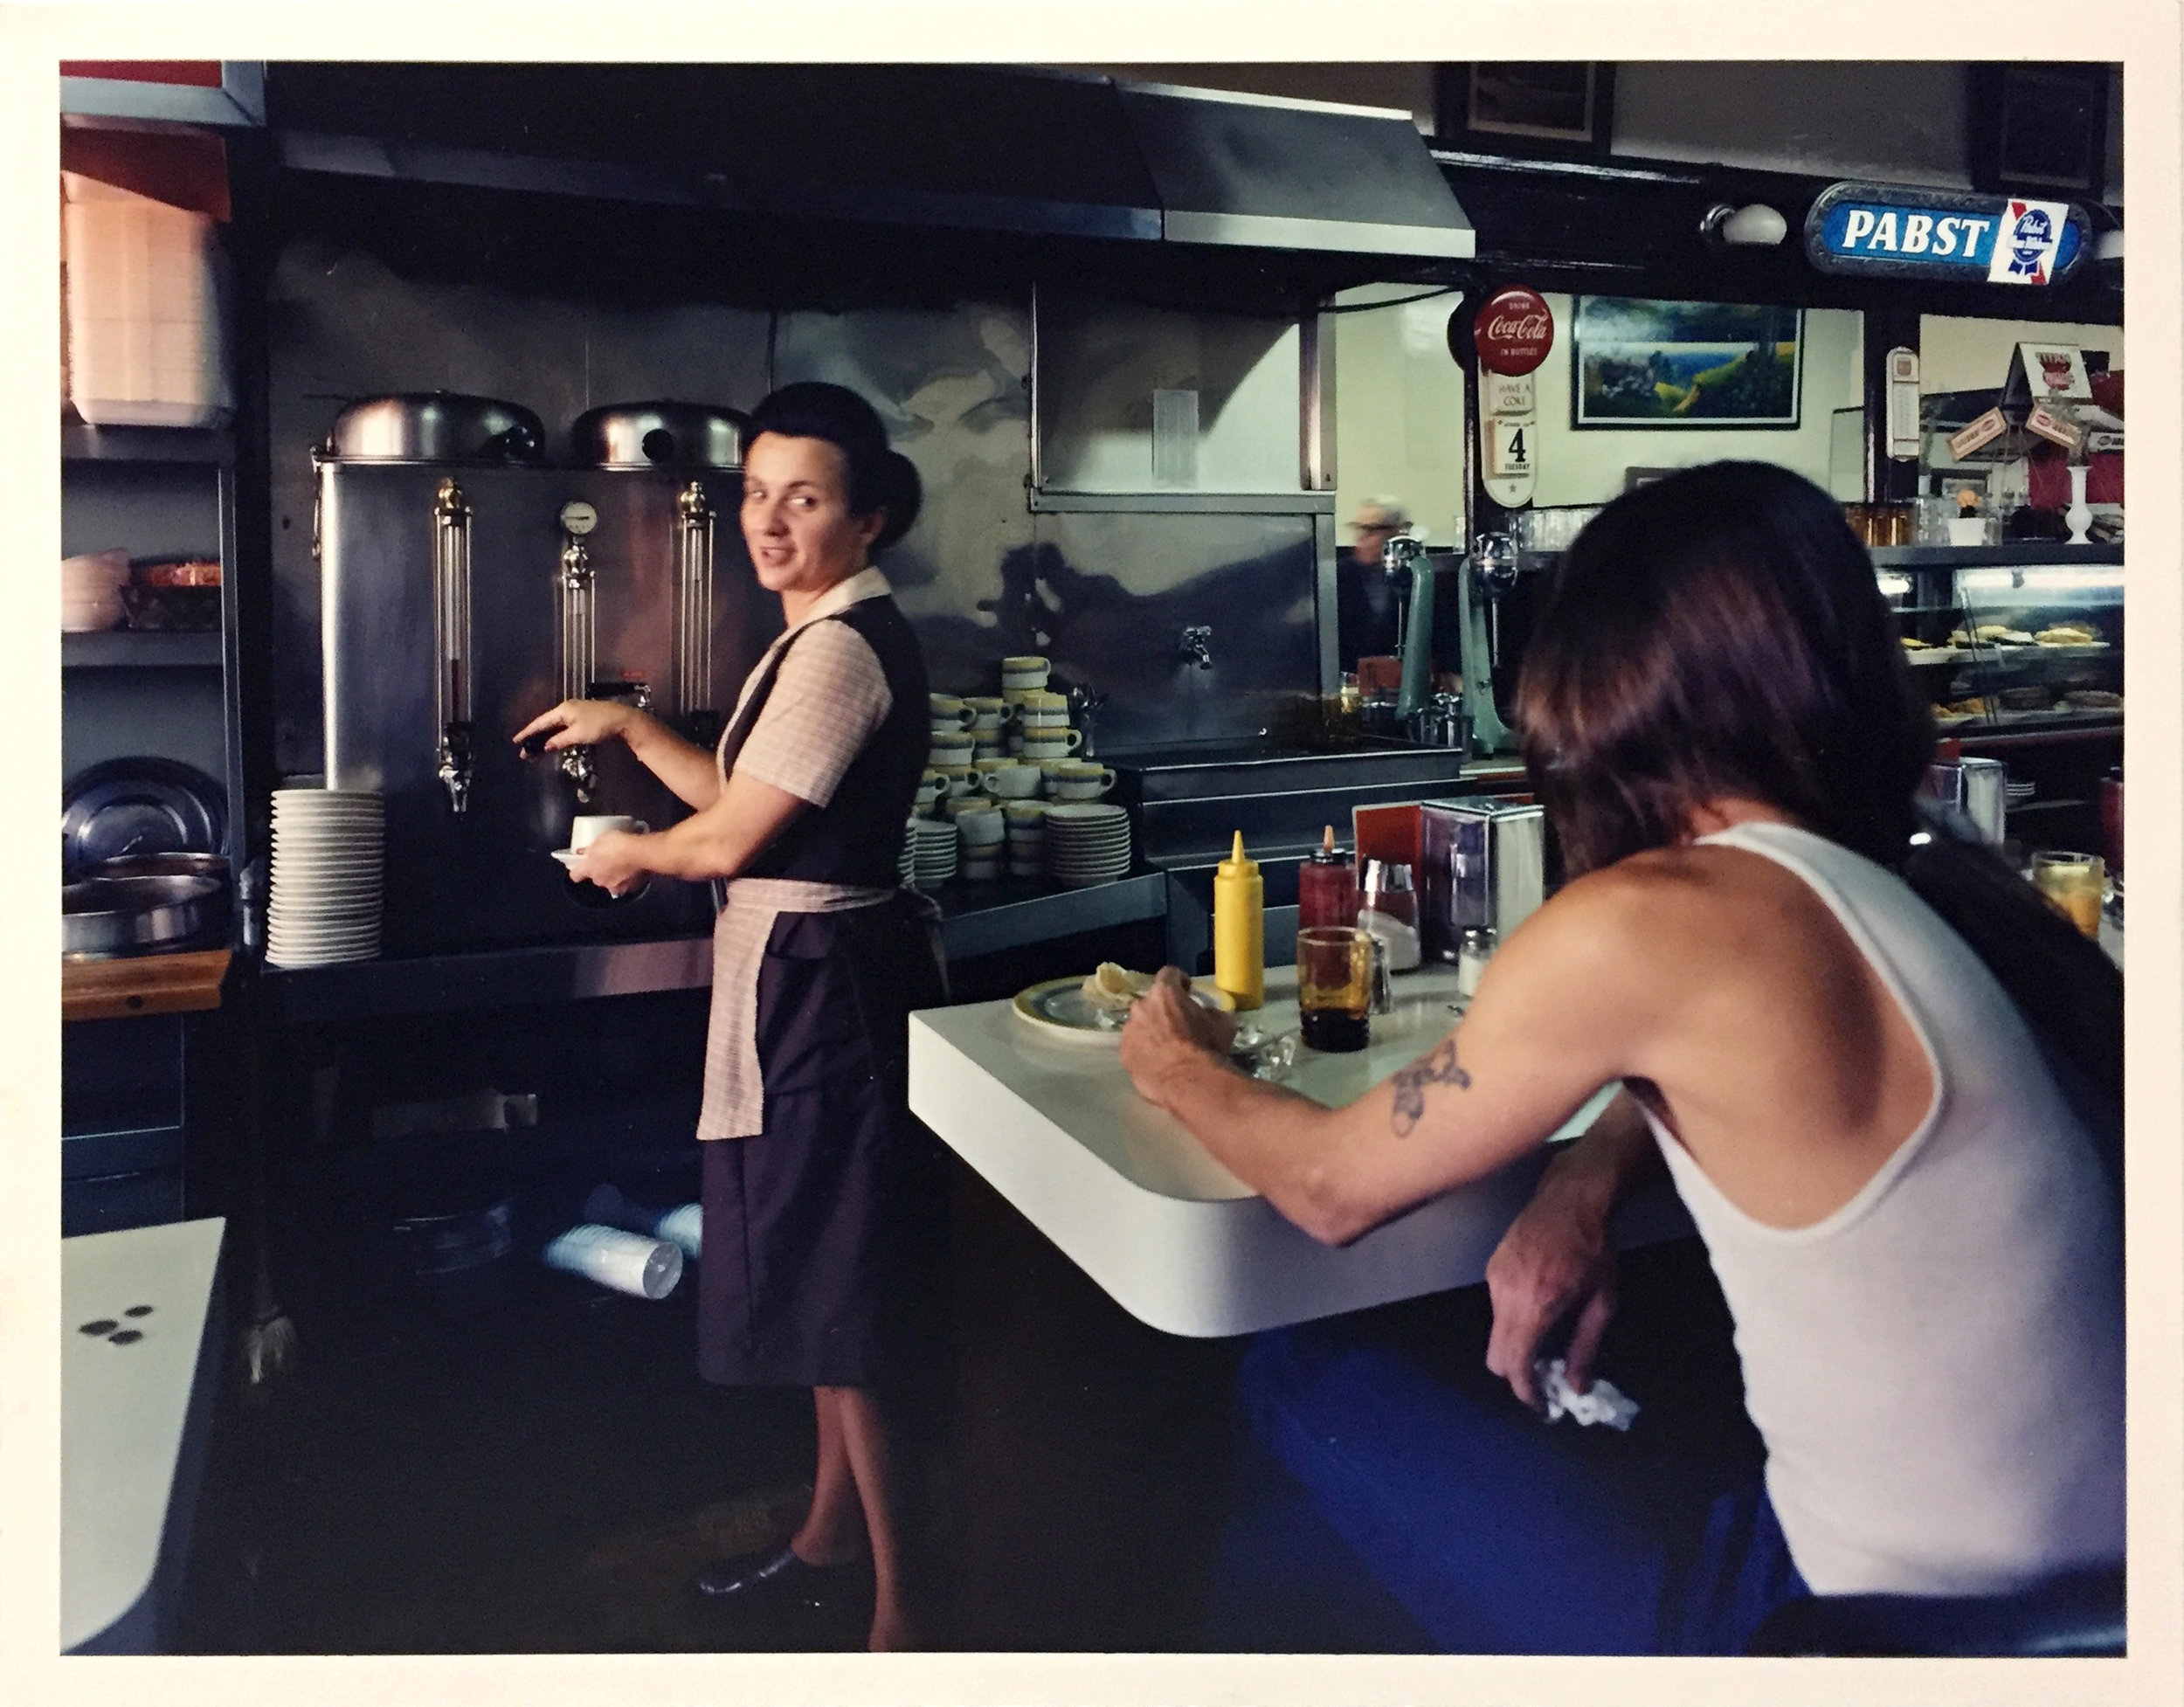 Pat serving coffee at the Budget Hotel, 7th at Mission Street, 1980 Vintage Chromogenic Print 11 x 14 inches and 16 x 20 inches